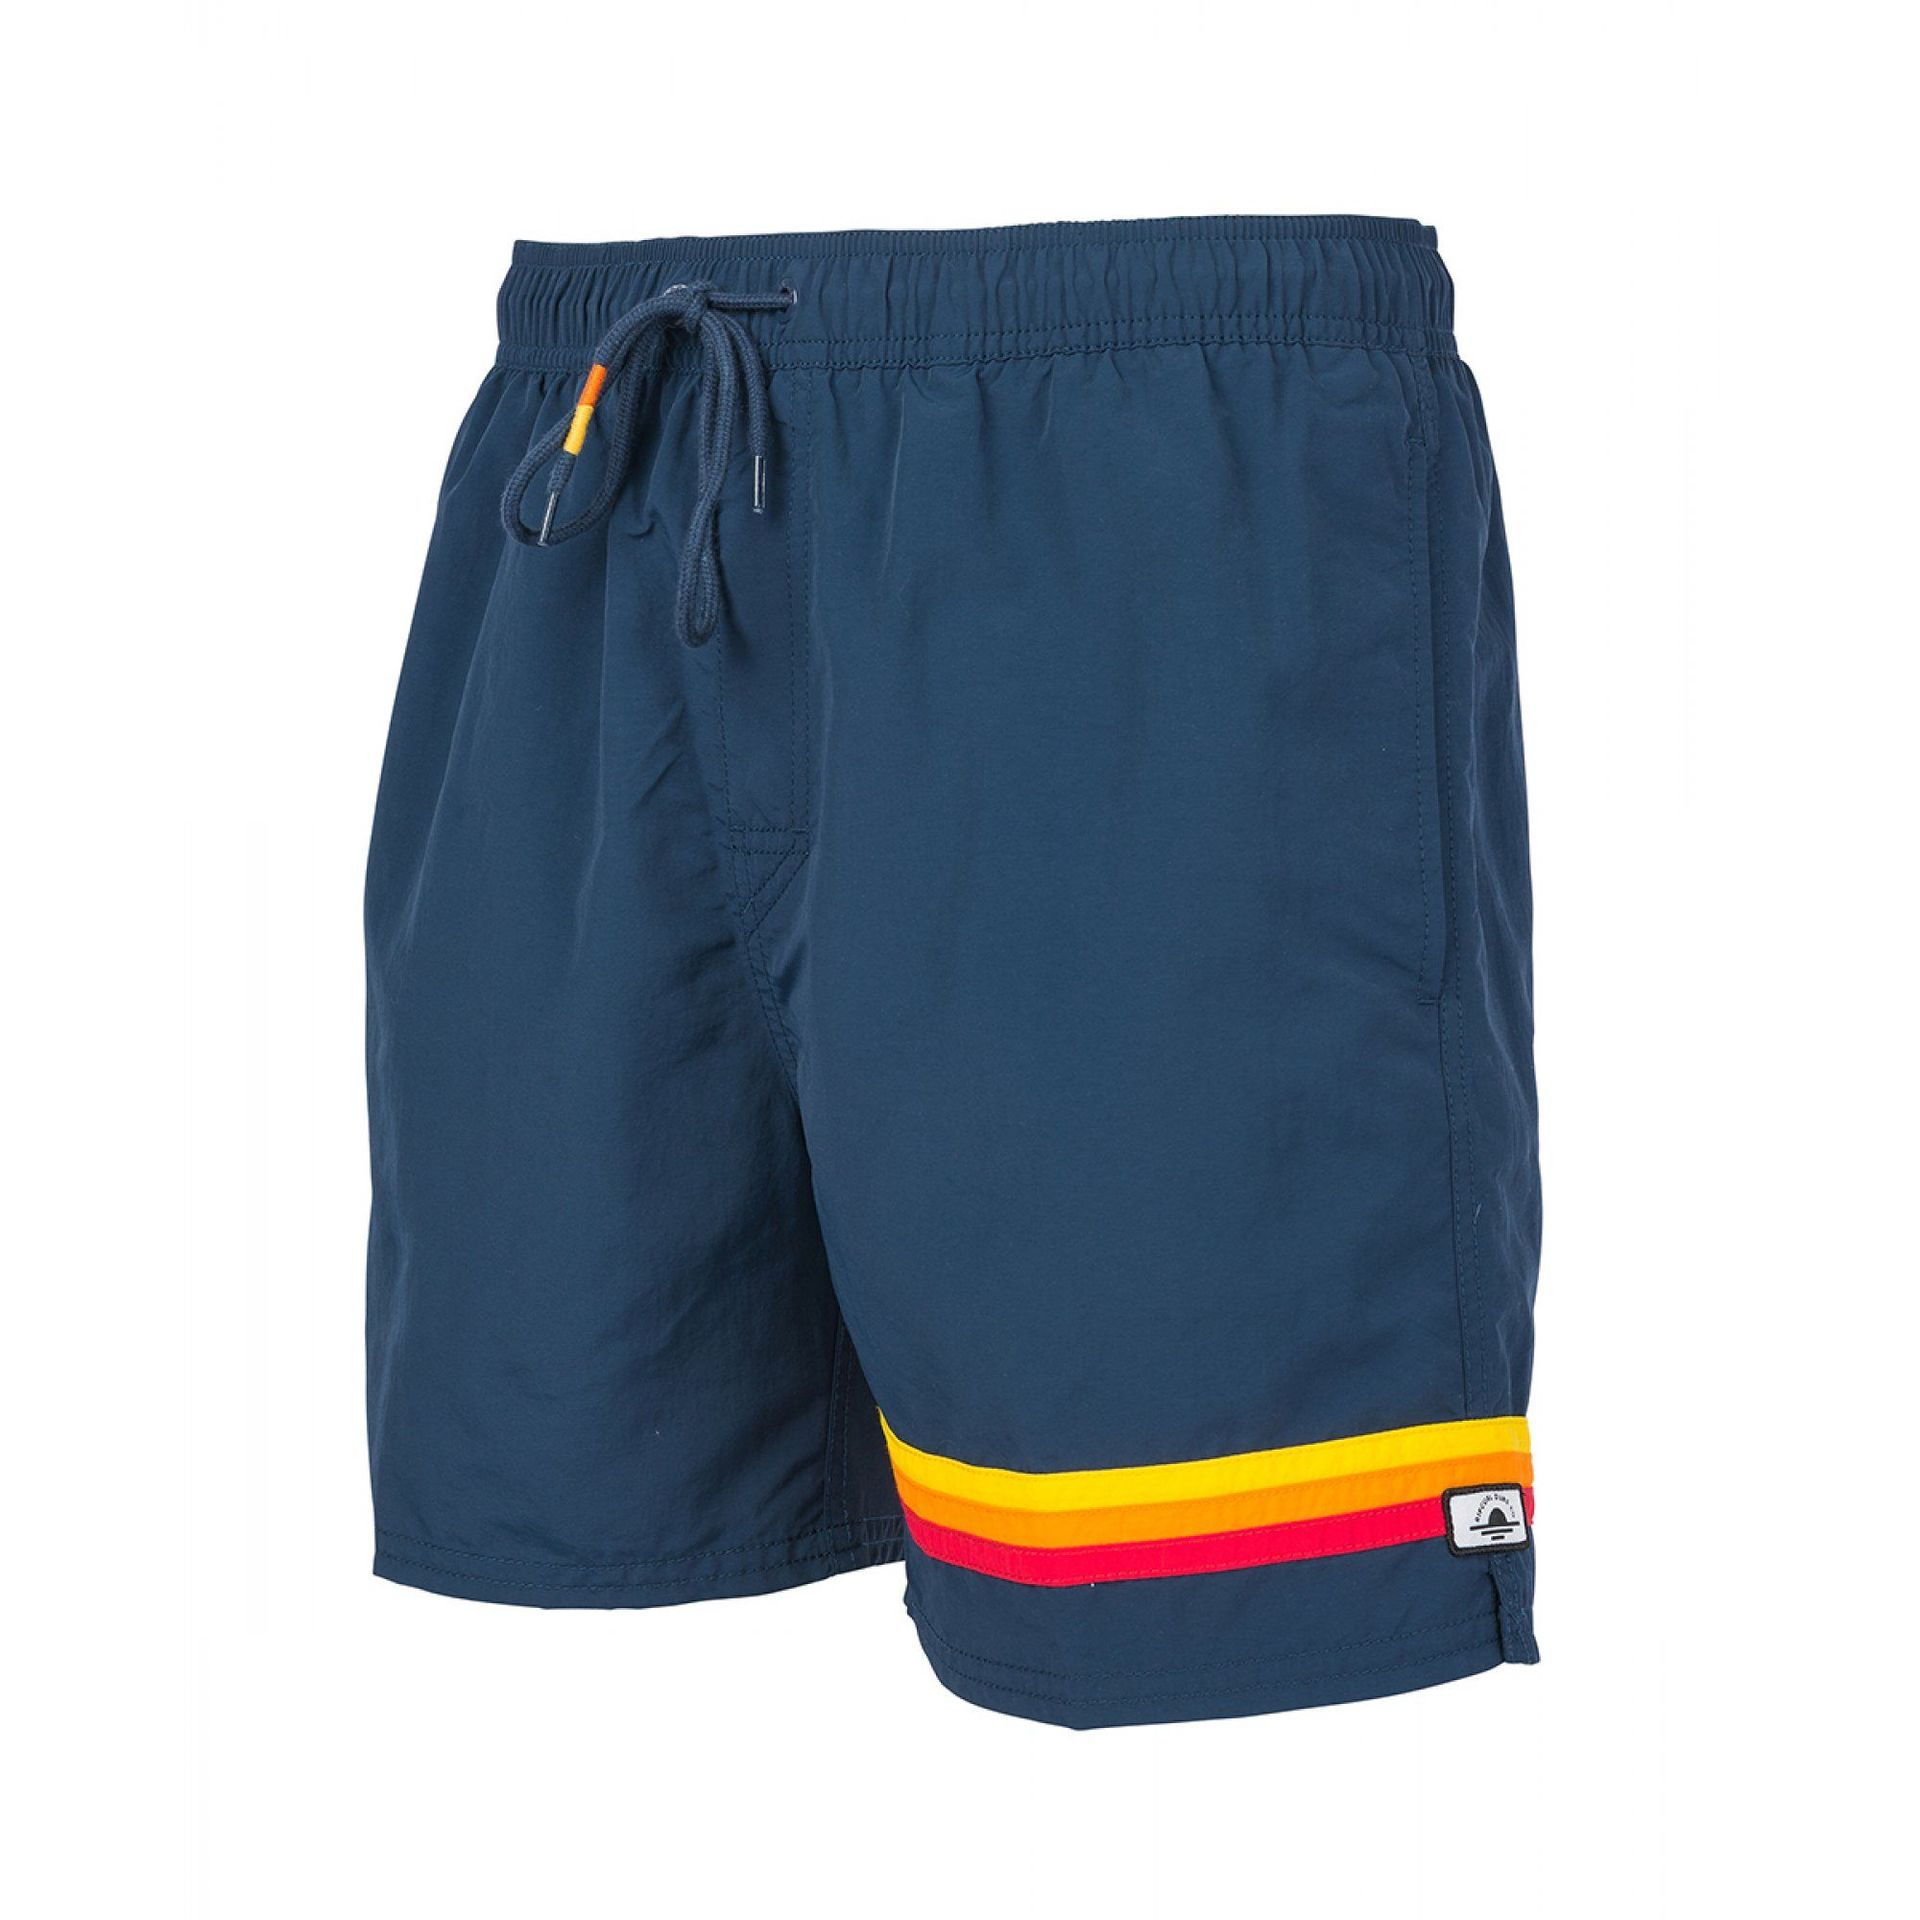 BOARDSHORTY RIP CURL VOLLEY SUN'S OUT 16 CBOKJ4-49 NAVY 1